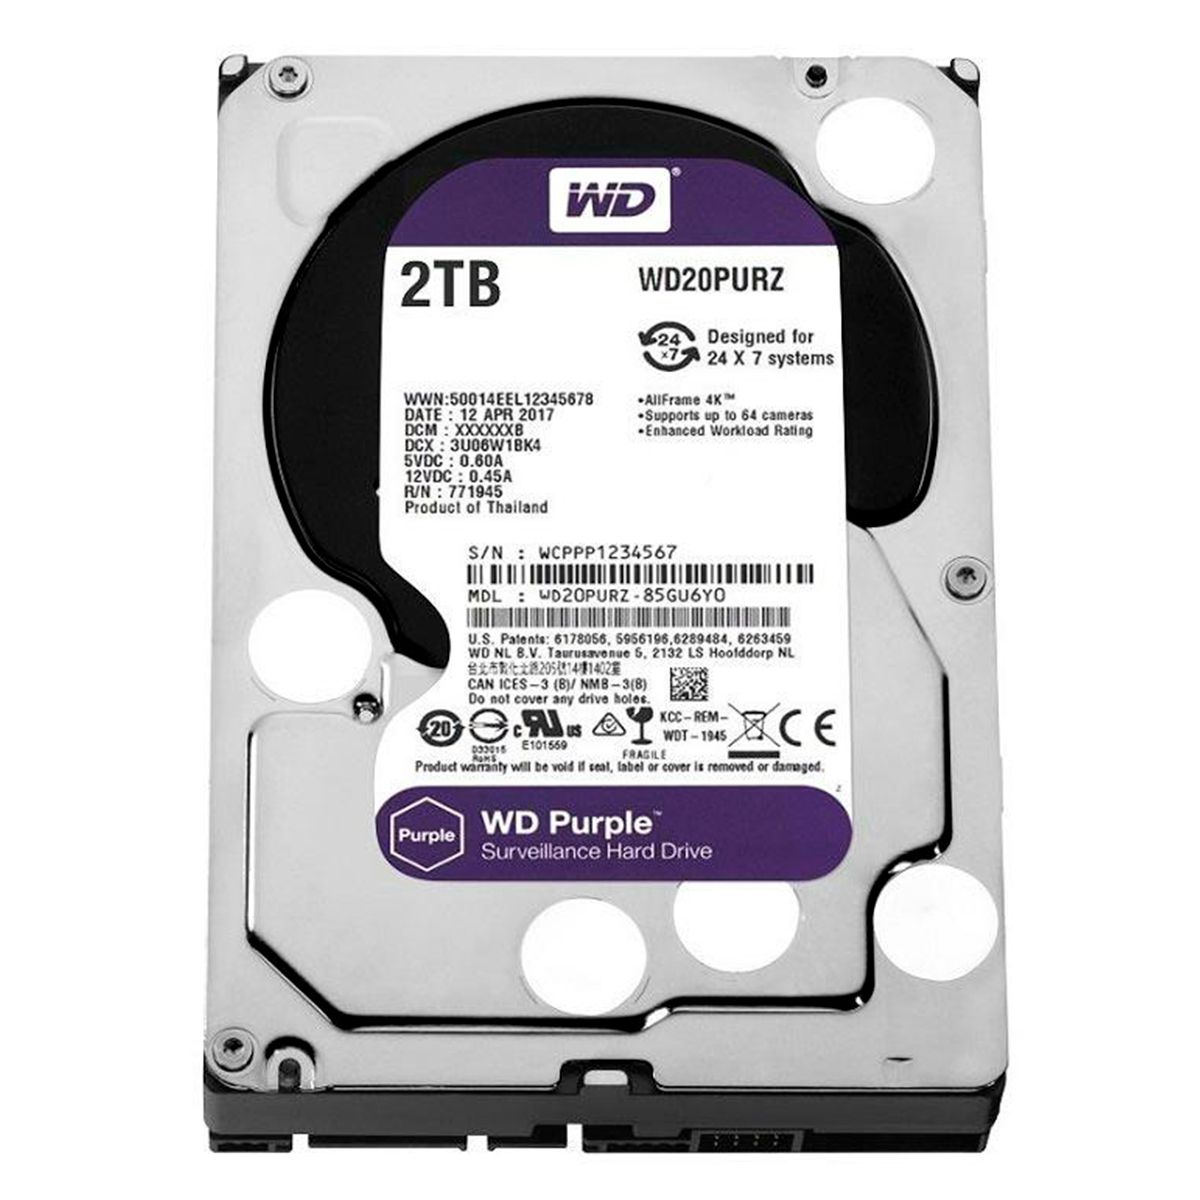 HD Interno WD Purple 2TB Surveillance SATA III 6GB/s 5400 RPM WD20PURZ  - Tudo Forte